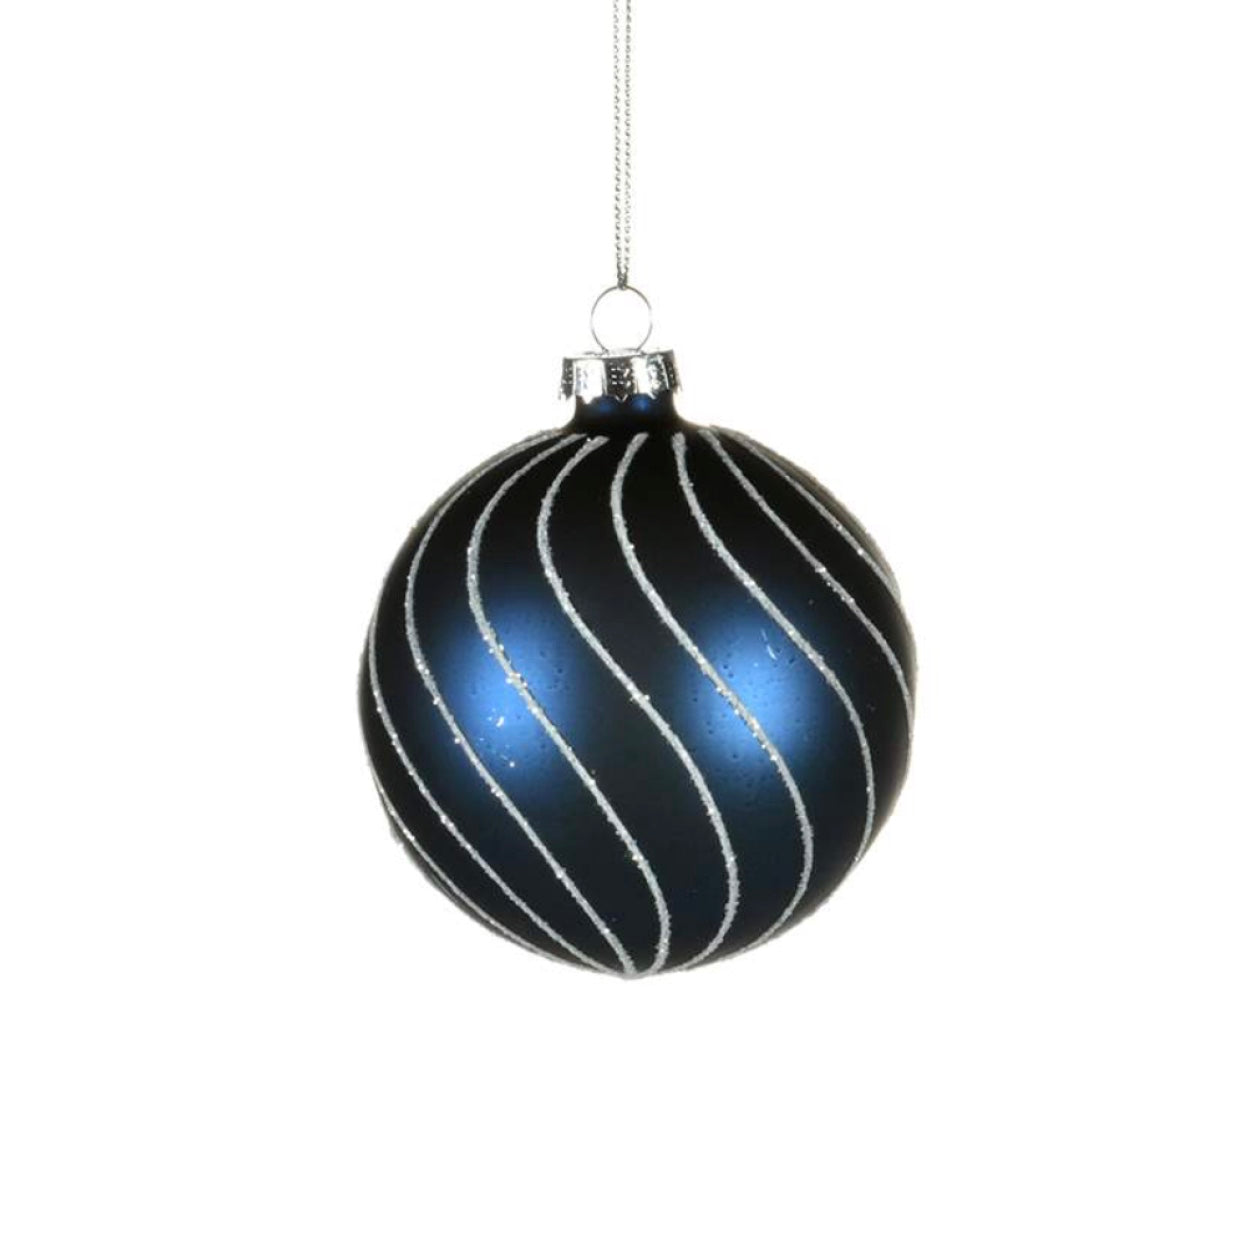 Navy Glass Ornament with Silver Glitter Swirls - Ball